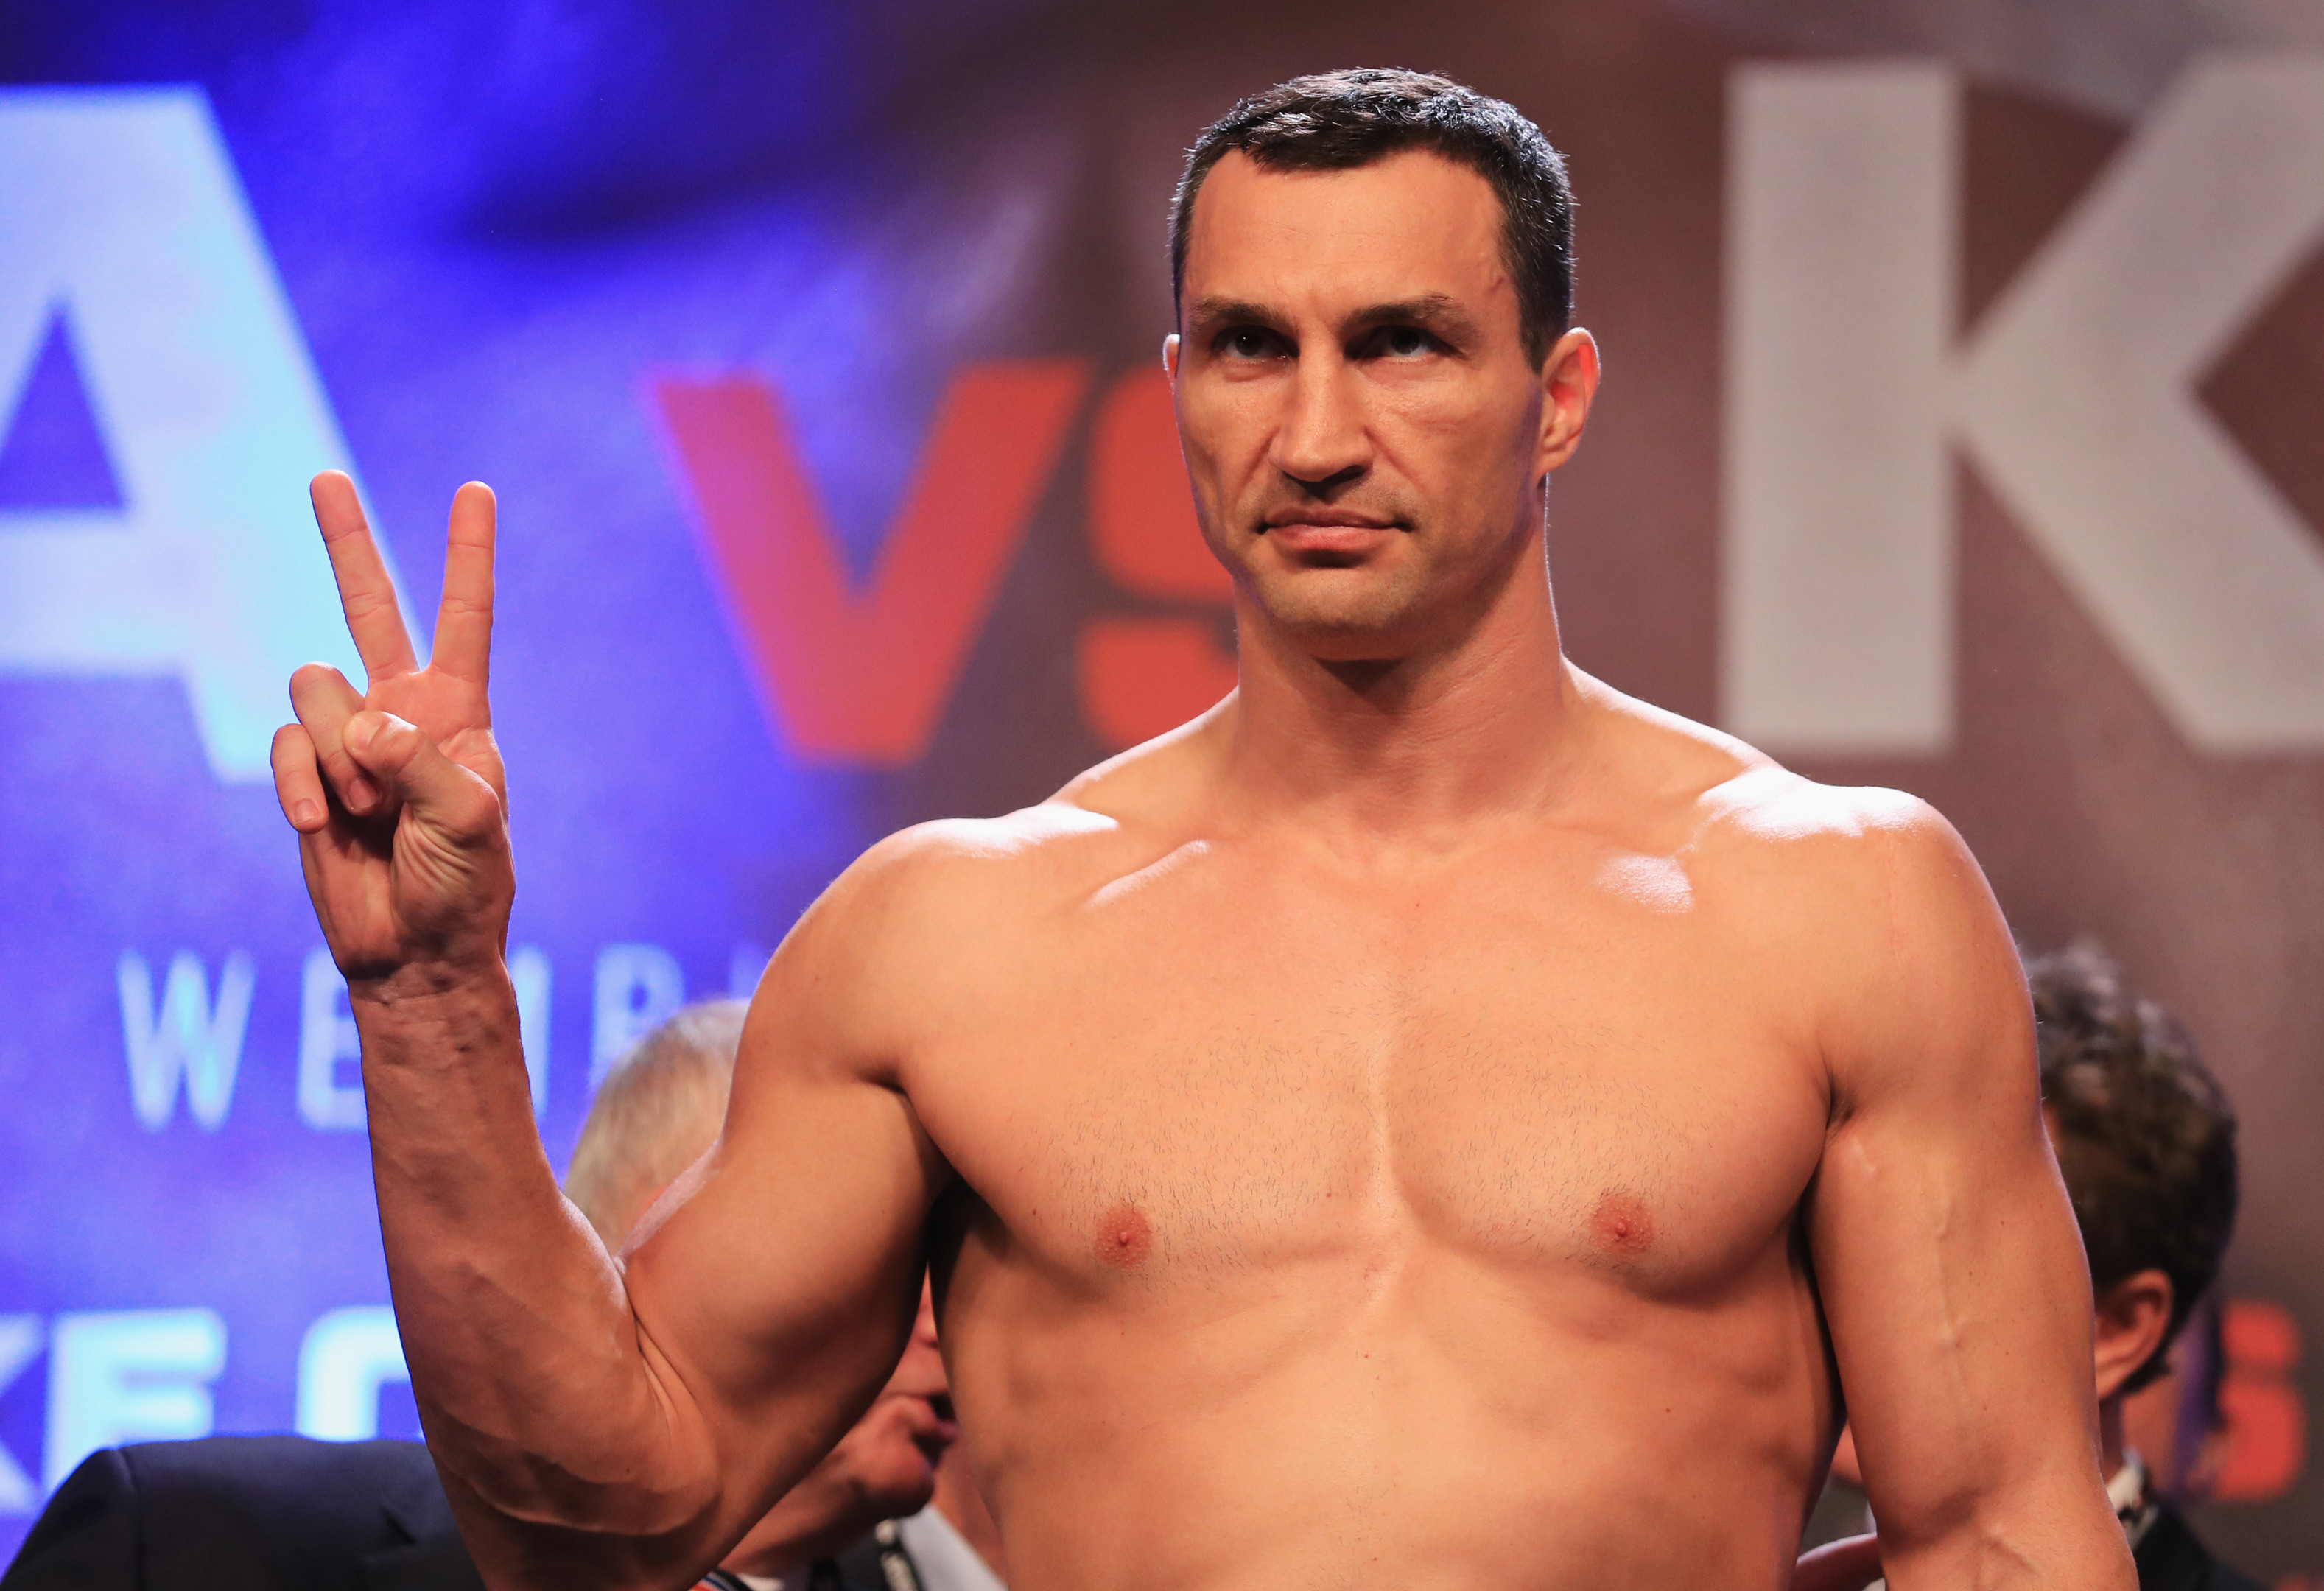 Wladimir Klitschko poses during the weigh-in prior to the Heavyweight Championship contest against Anthony Joshua at Wembley Arena.